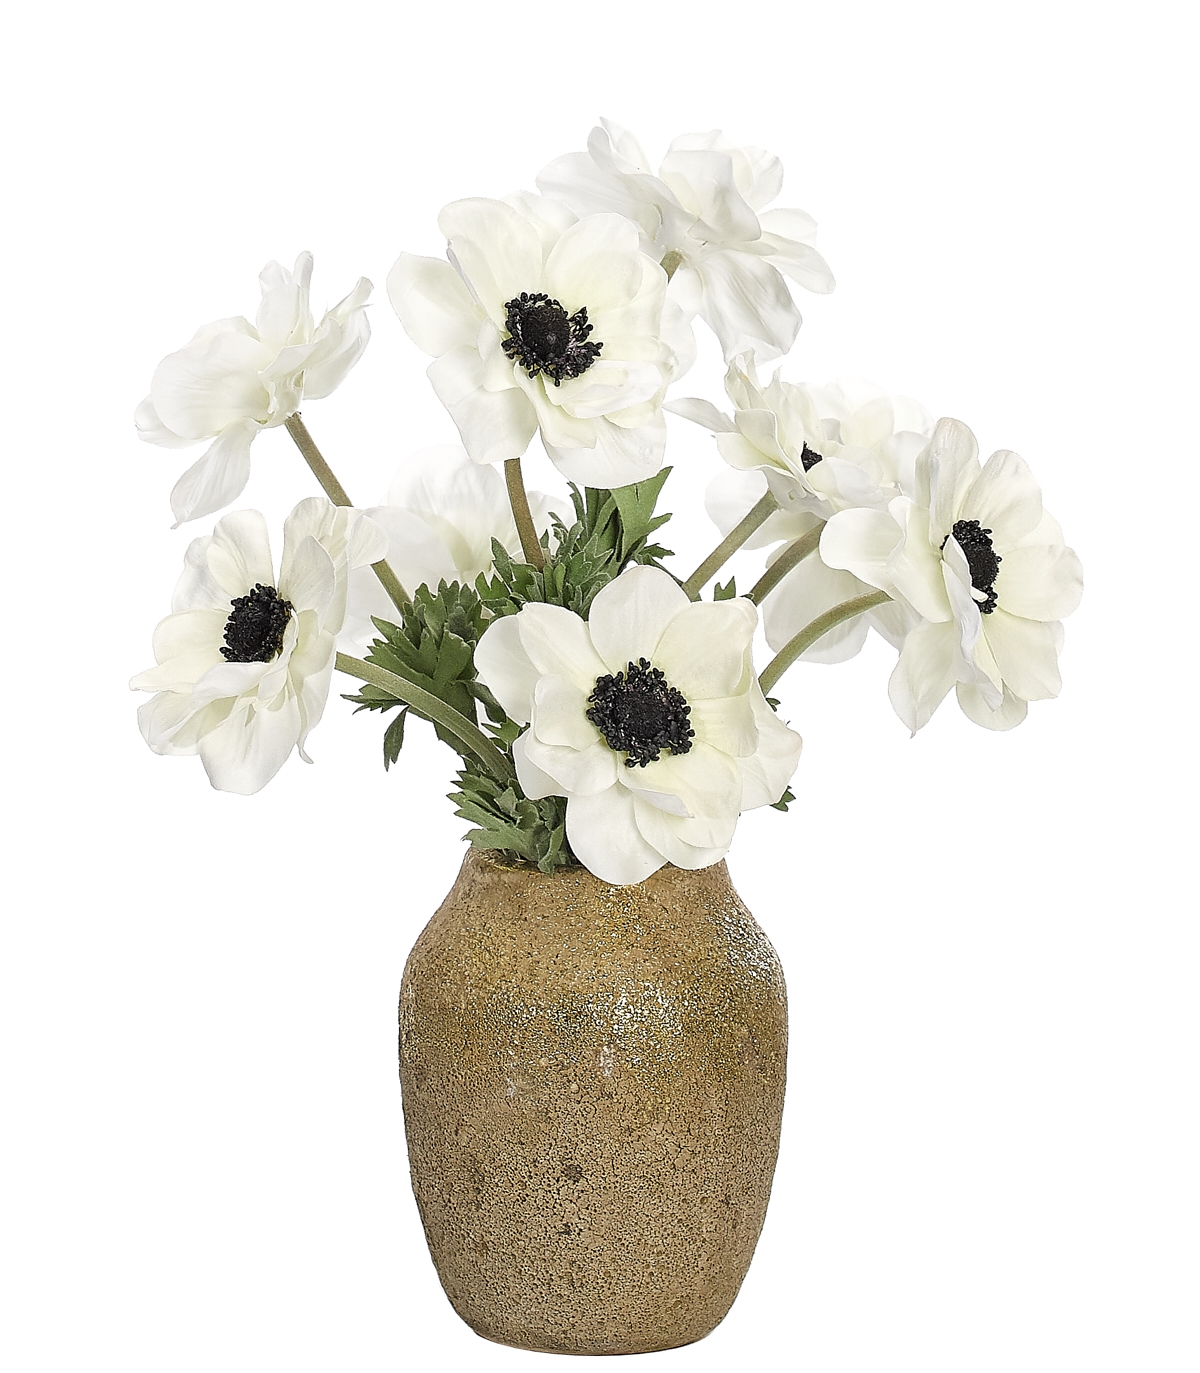 Anemone, White, Textured Ceramic Vase, 12wx12dx15h